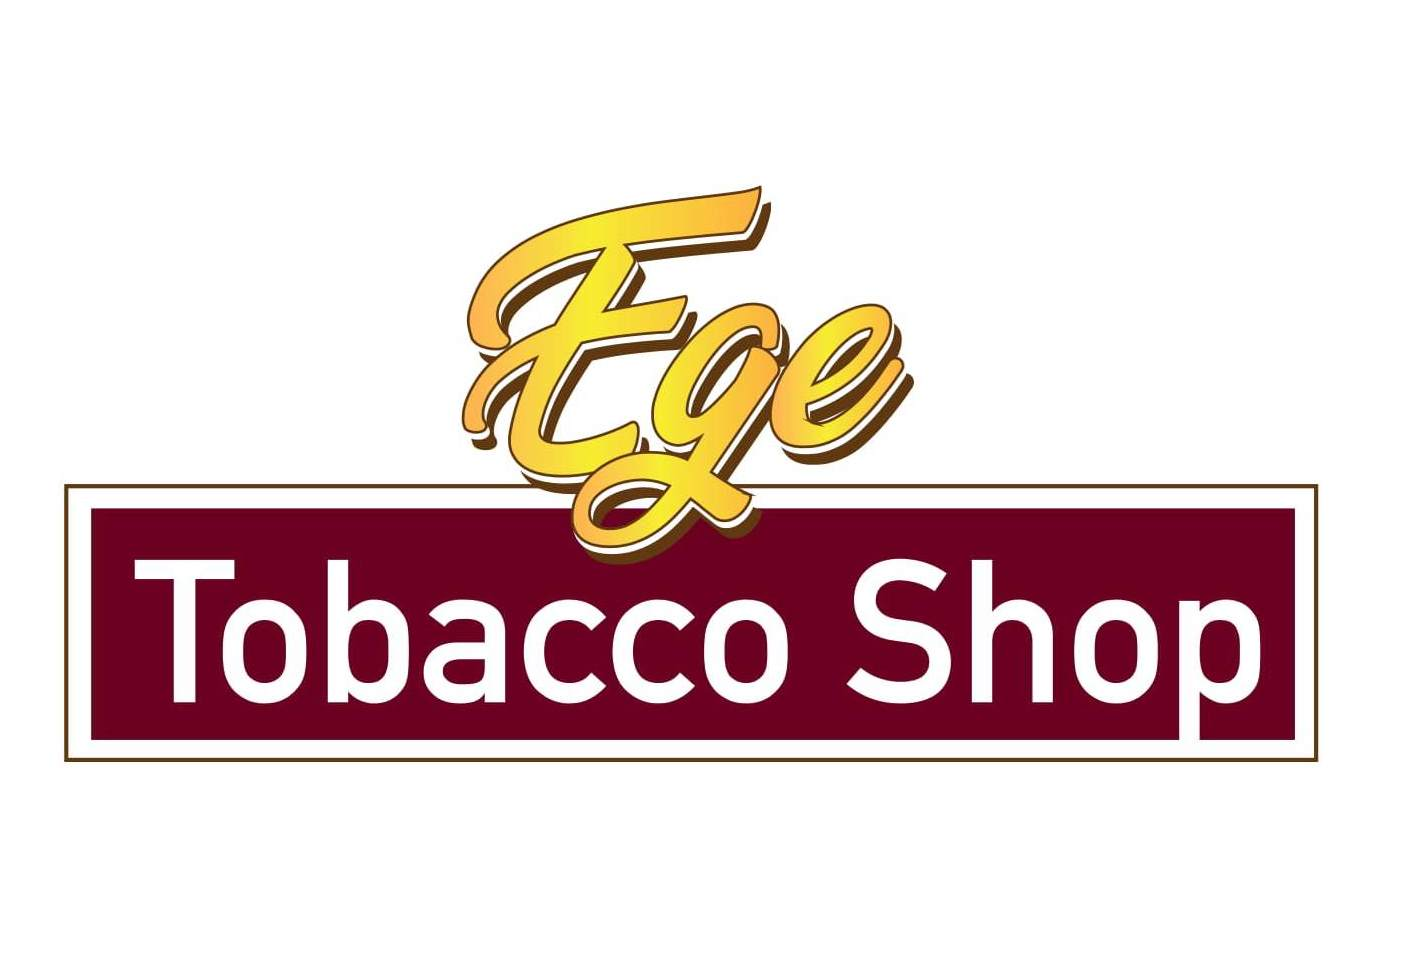 Ege Tobacco Shop